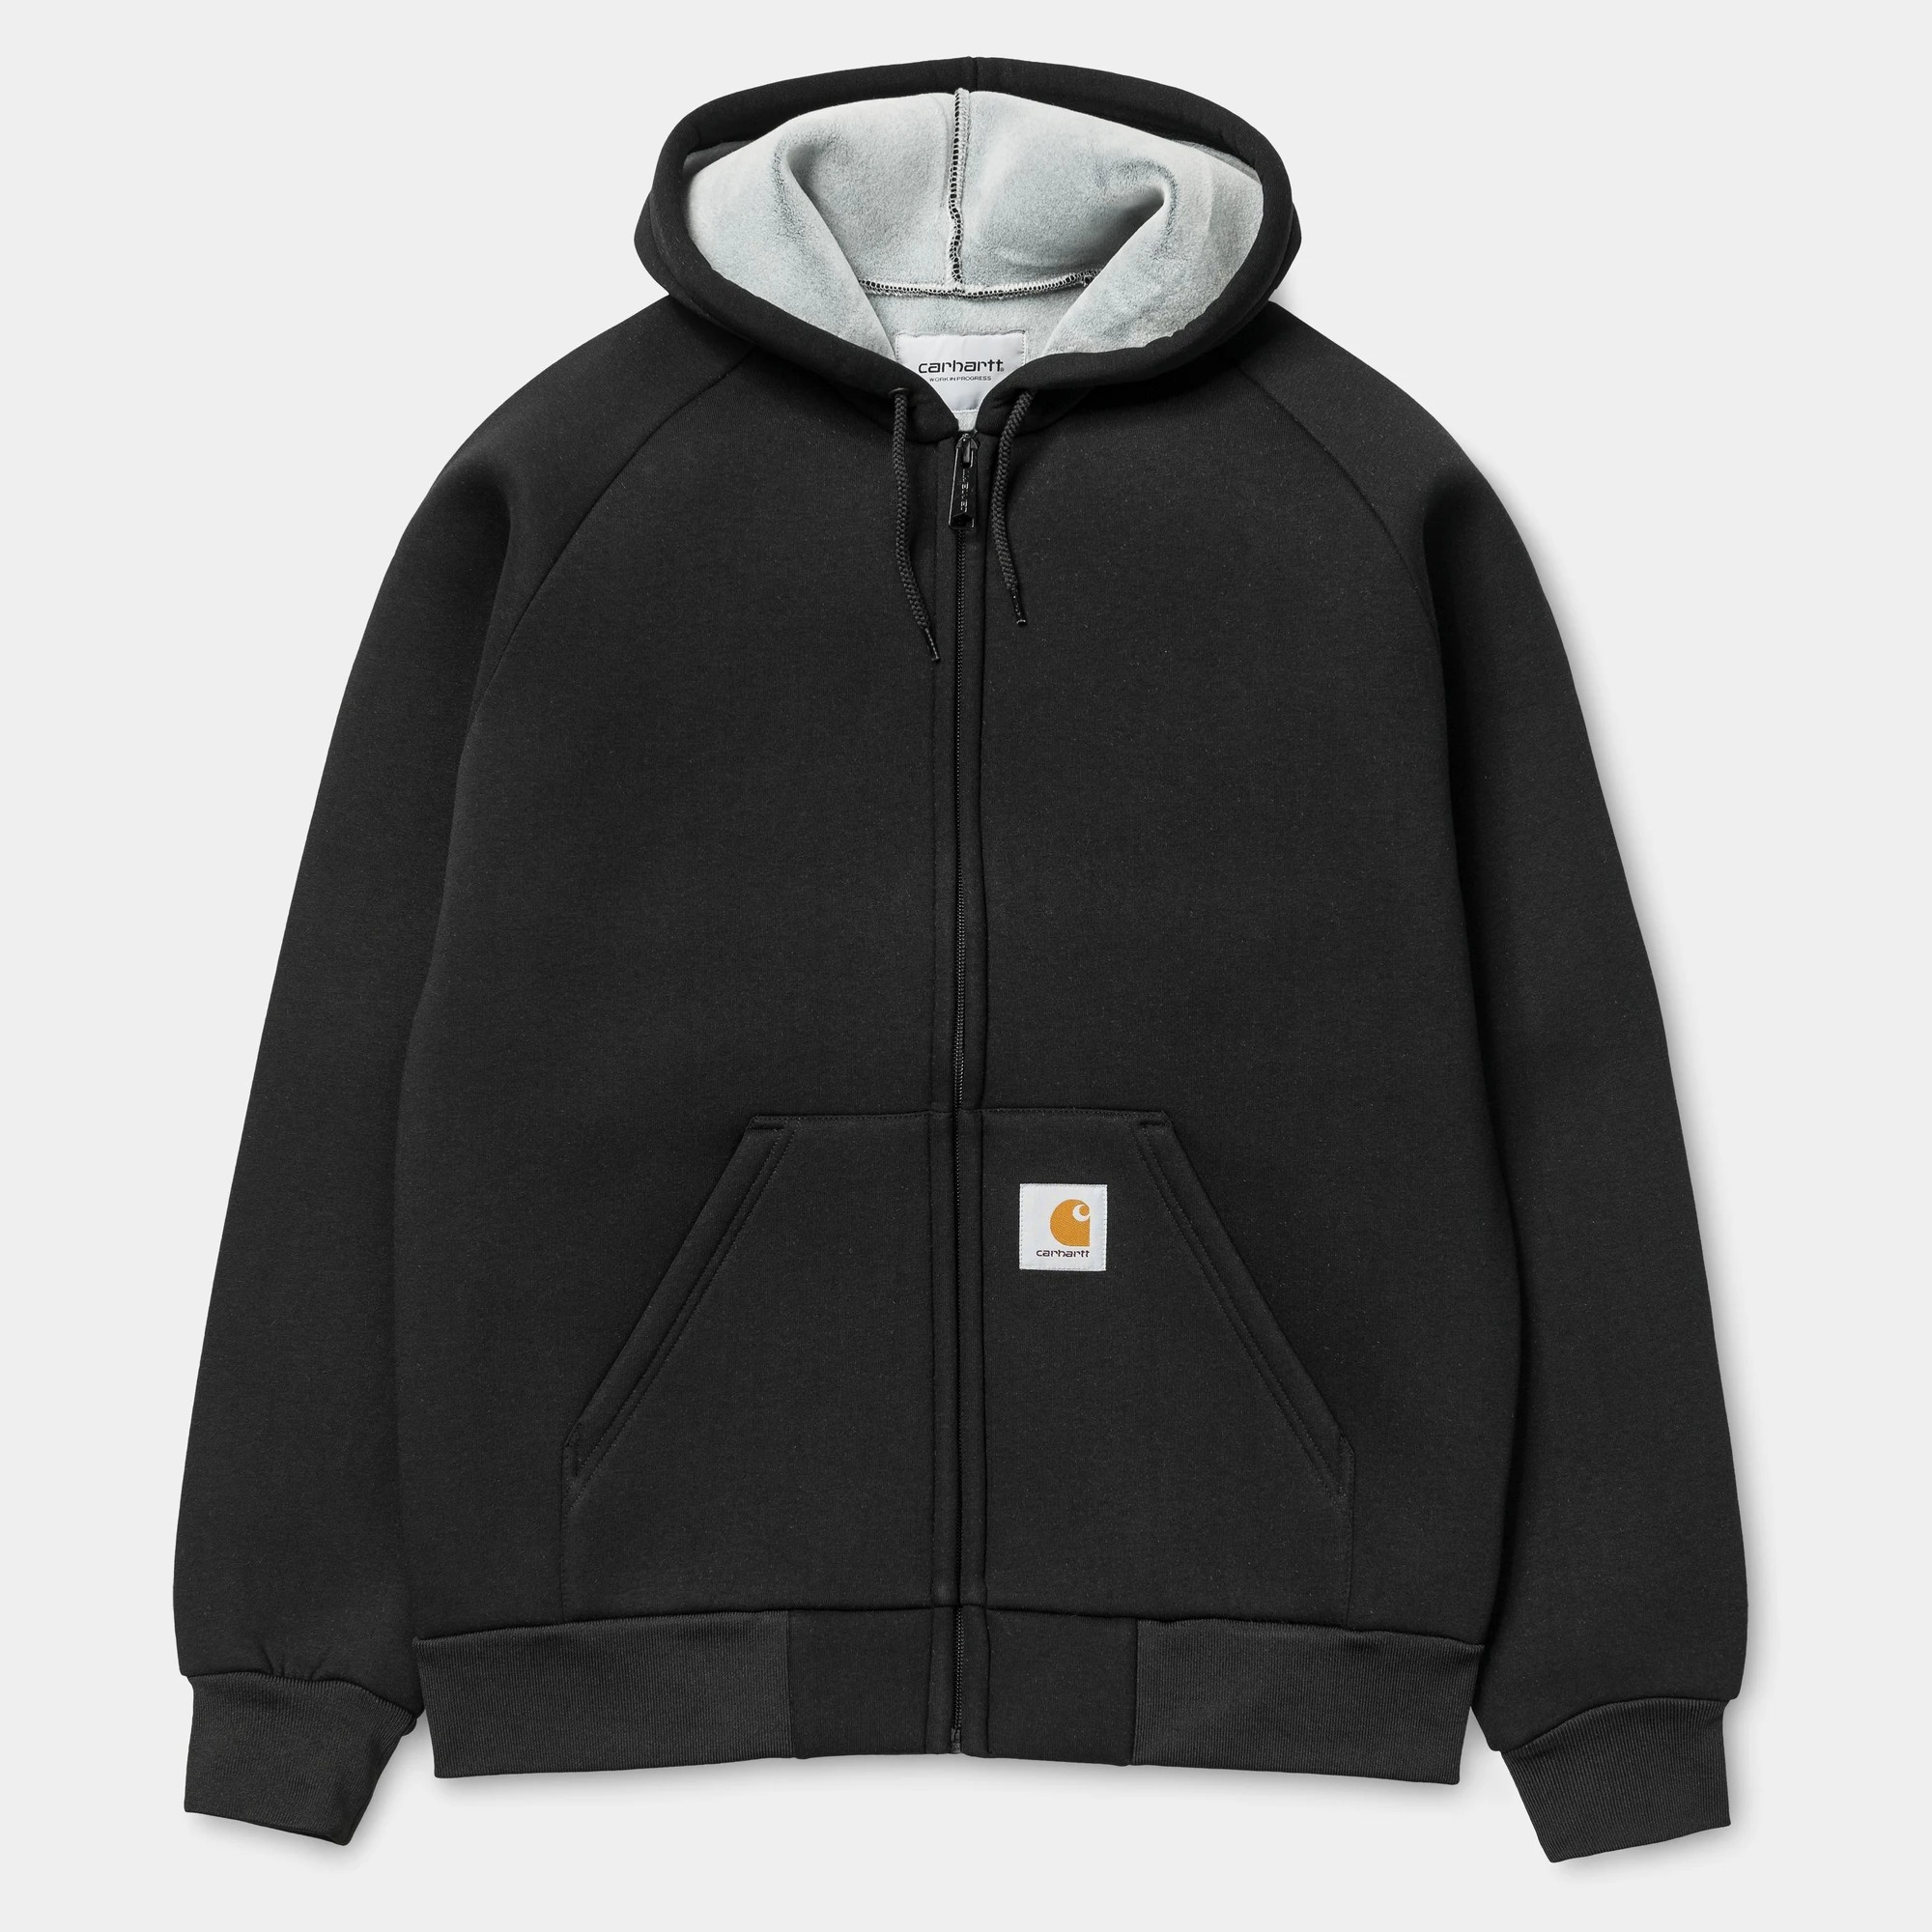 Carhartt WIP Car Lux Hooded Jacket in black